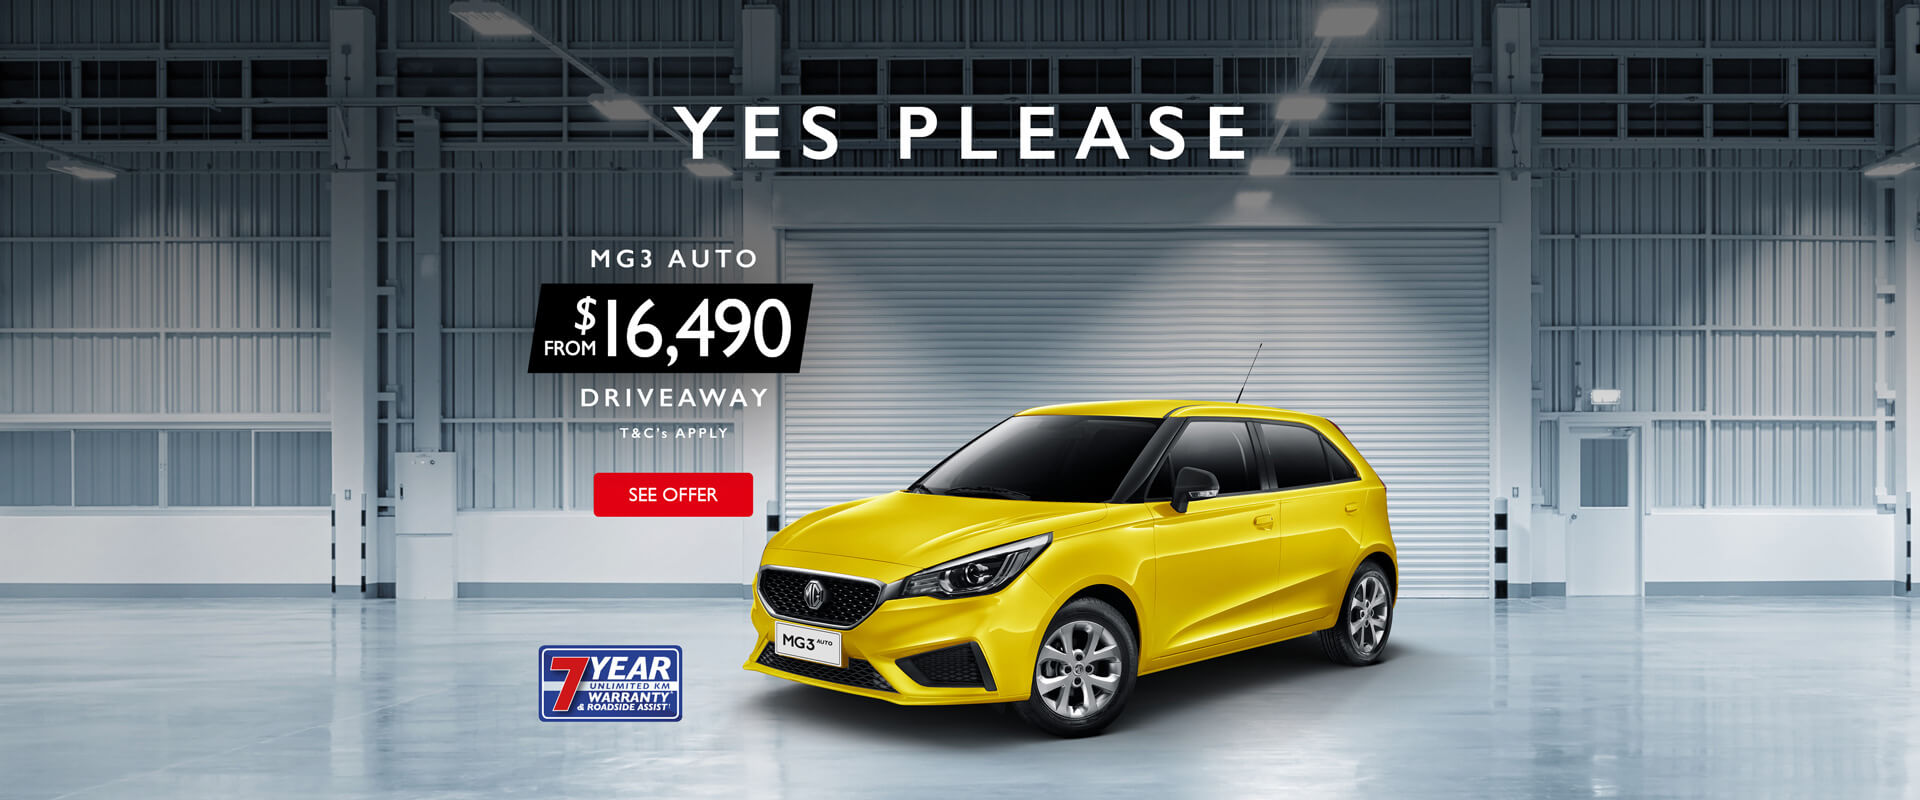 MG3 Auto from $16,490 Driveaway